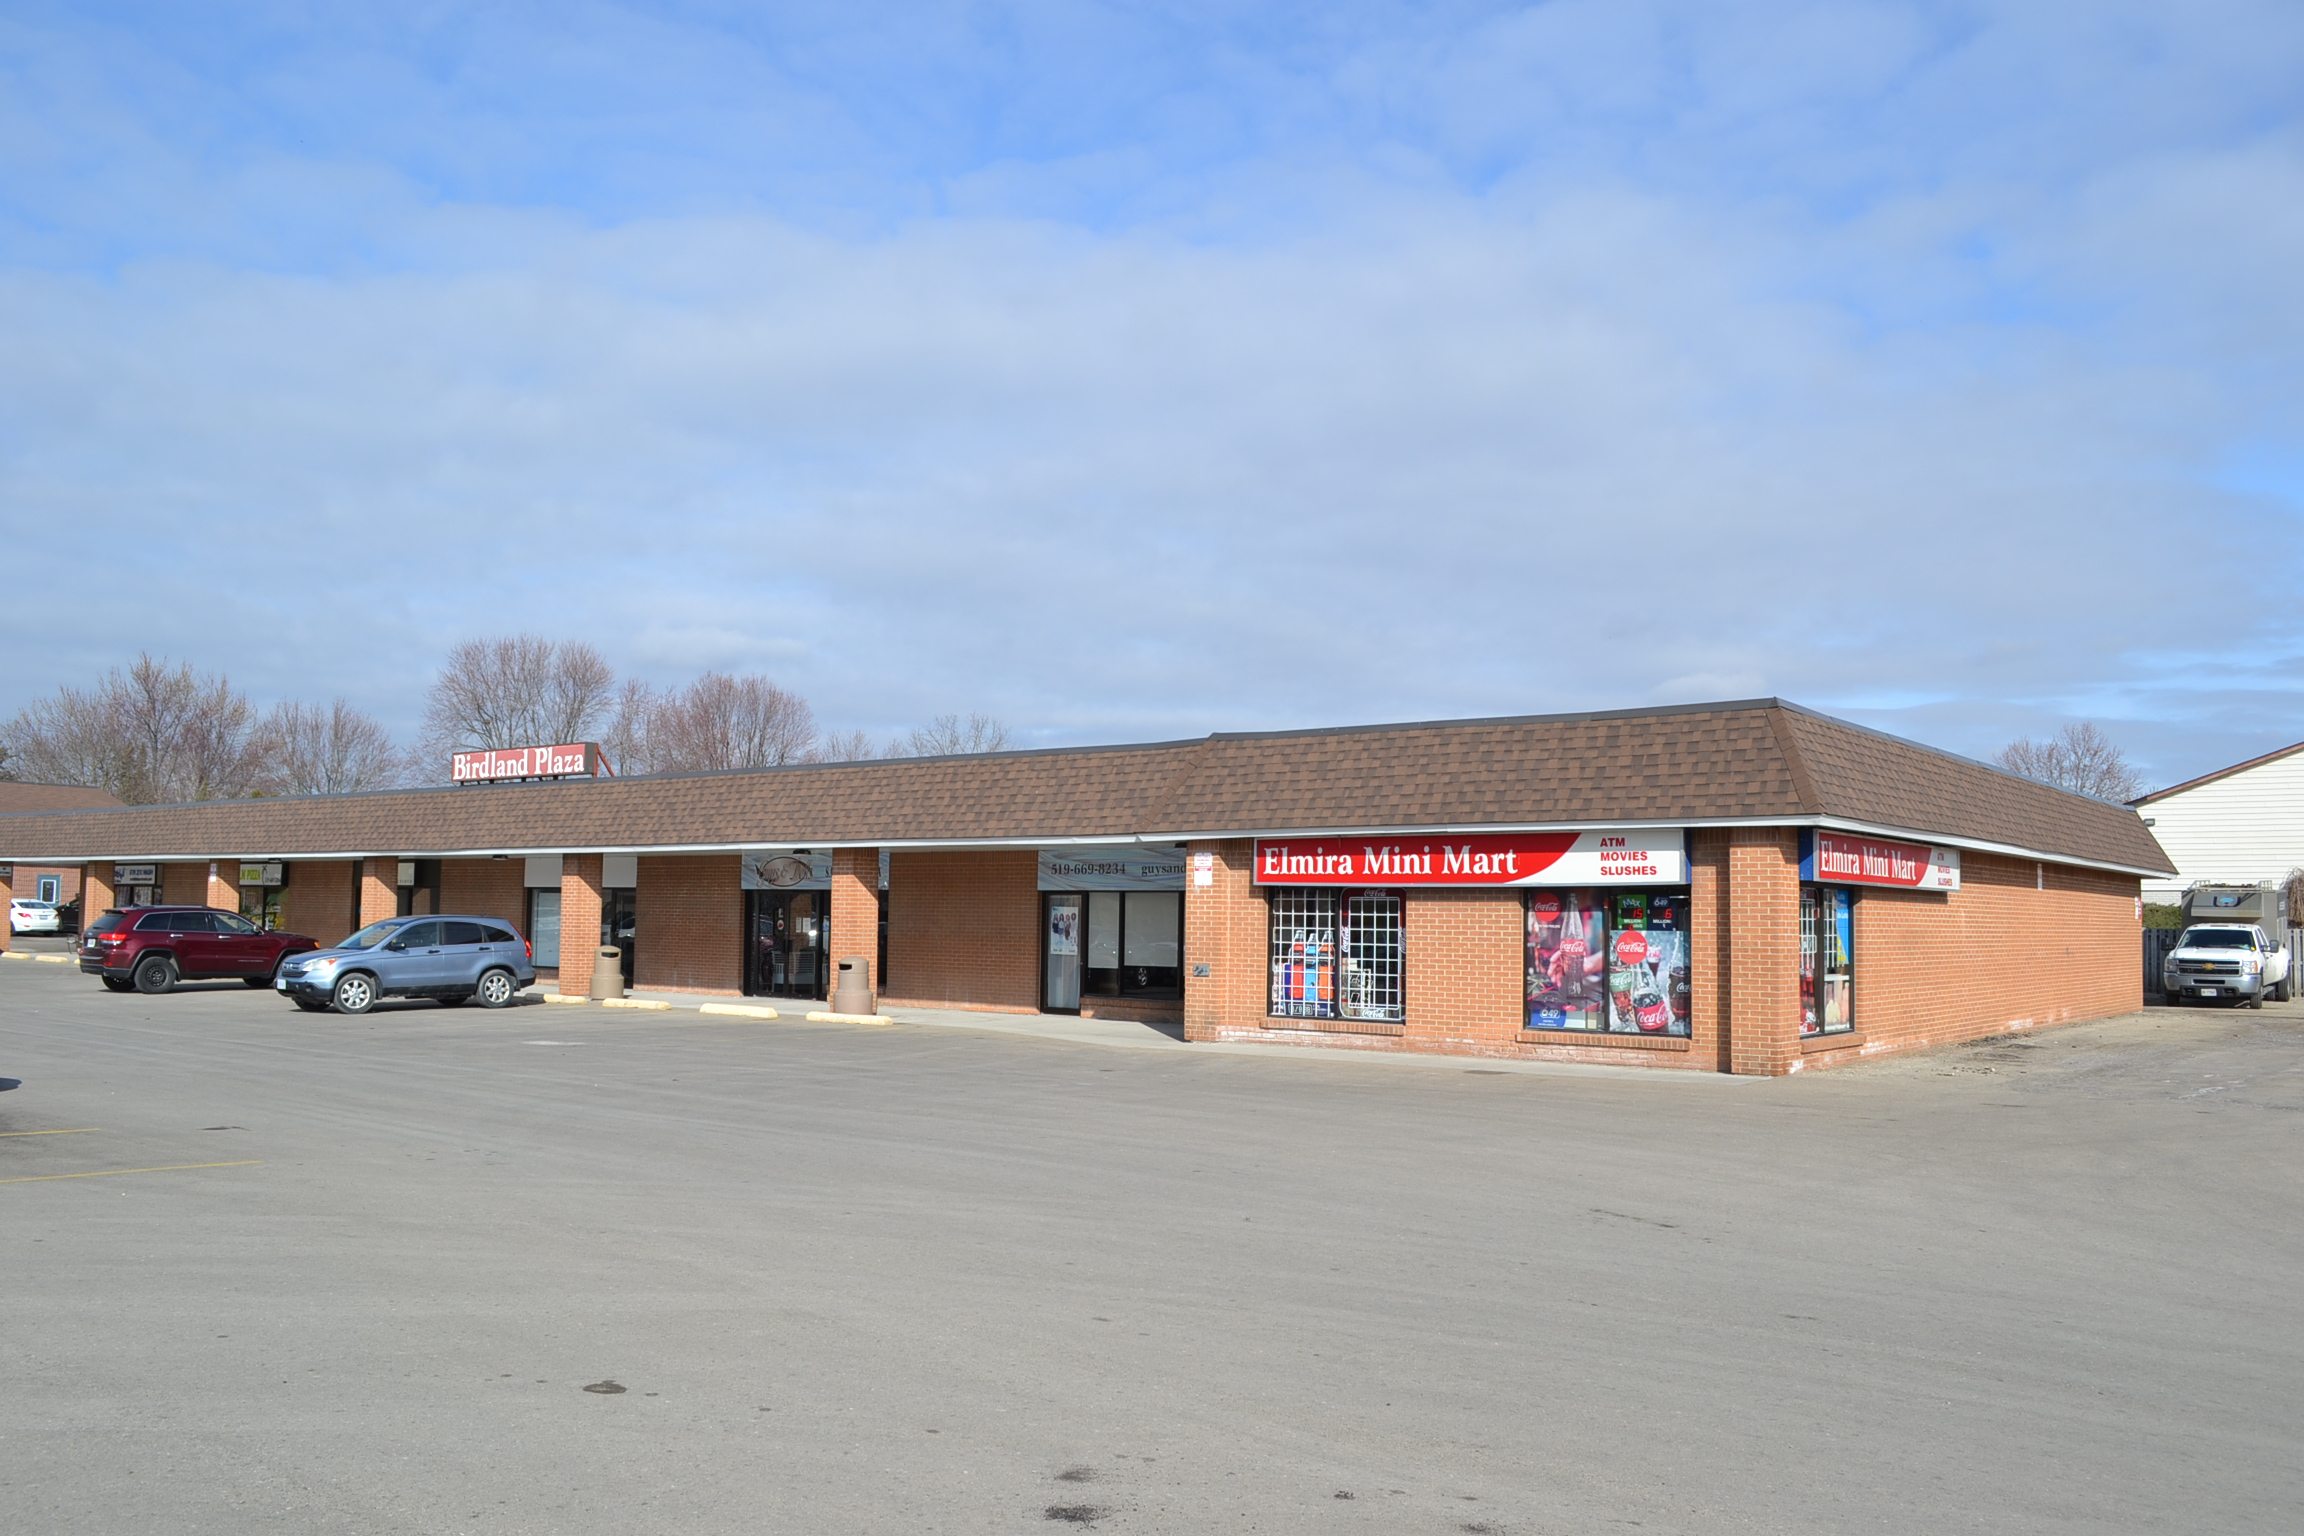 Picture of a property/building at 112 Oriole Pkwy, Birdland Plaza  Unit #4.